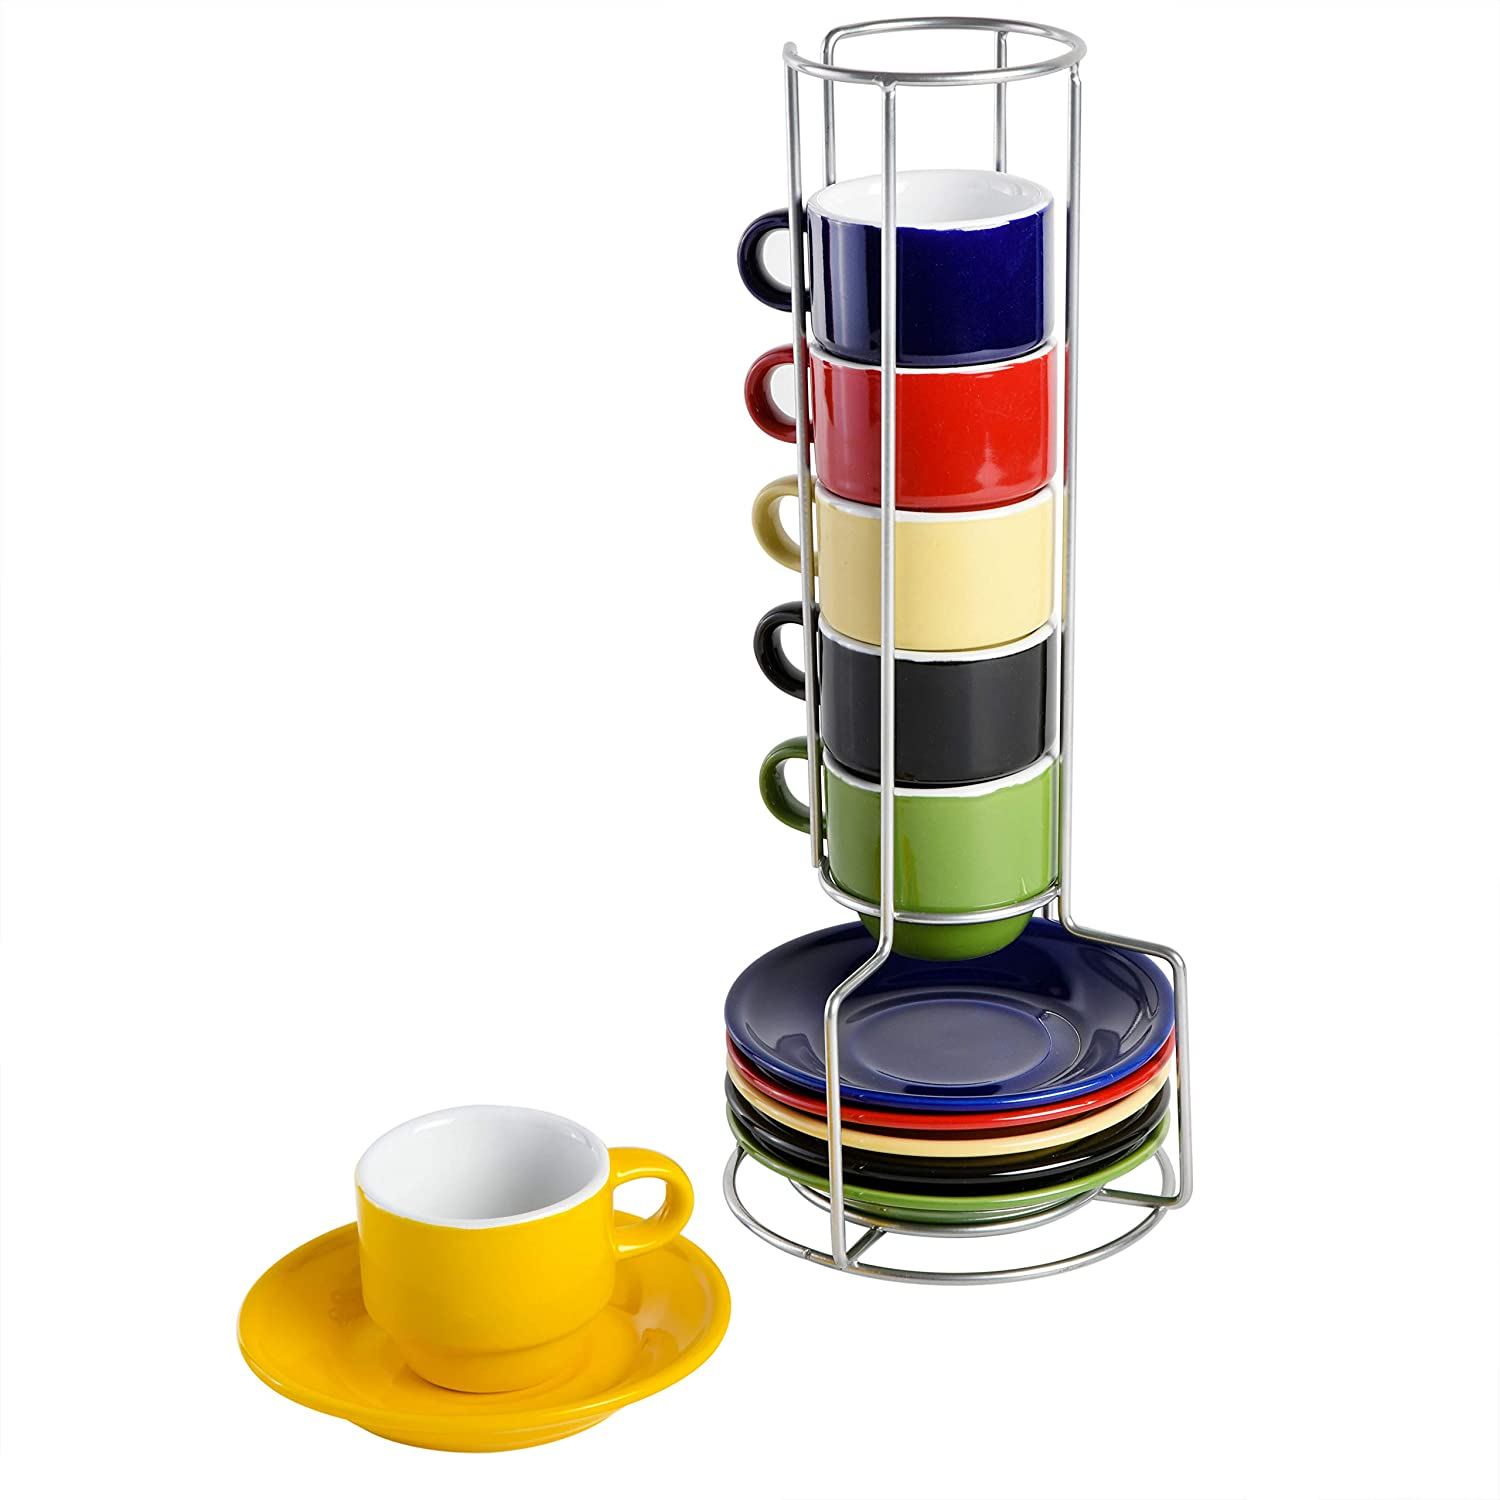 Gibson Home Sensations Stackable Espresso Saucer Set, 13PC Cups Stand, Assorted